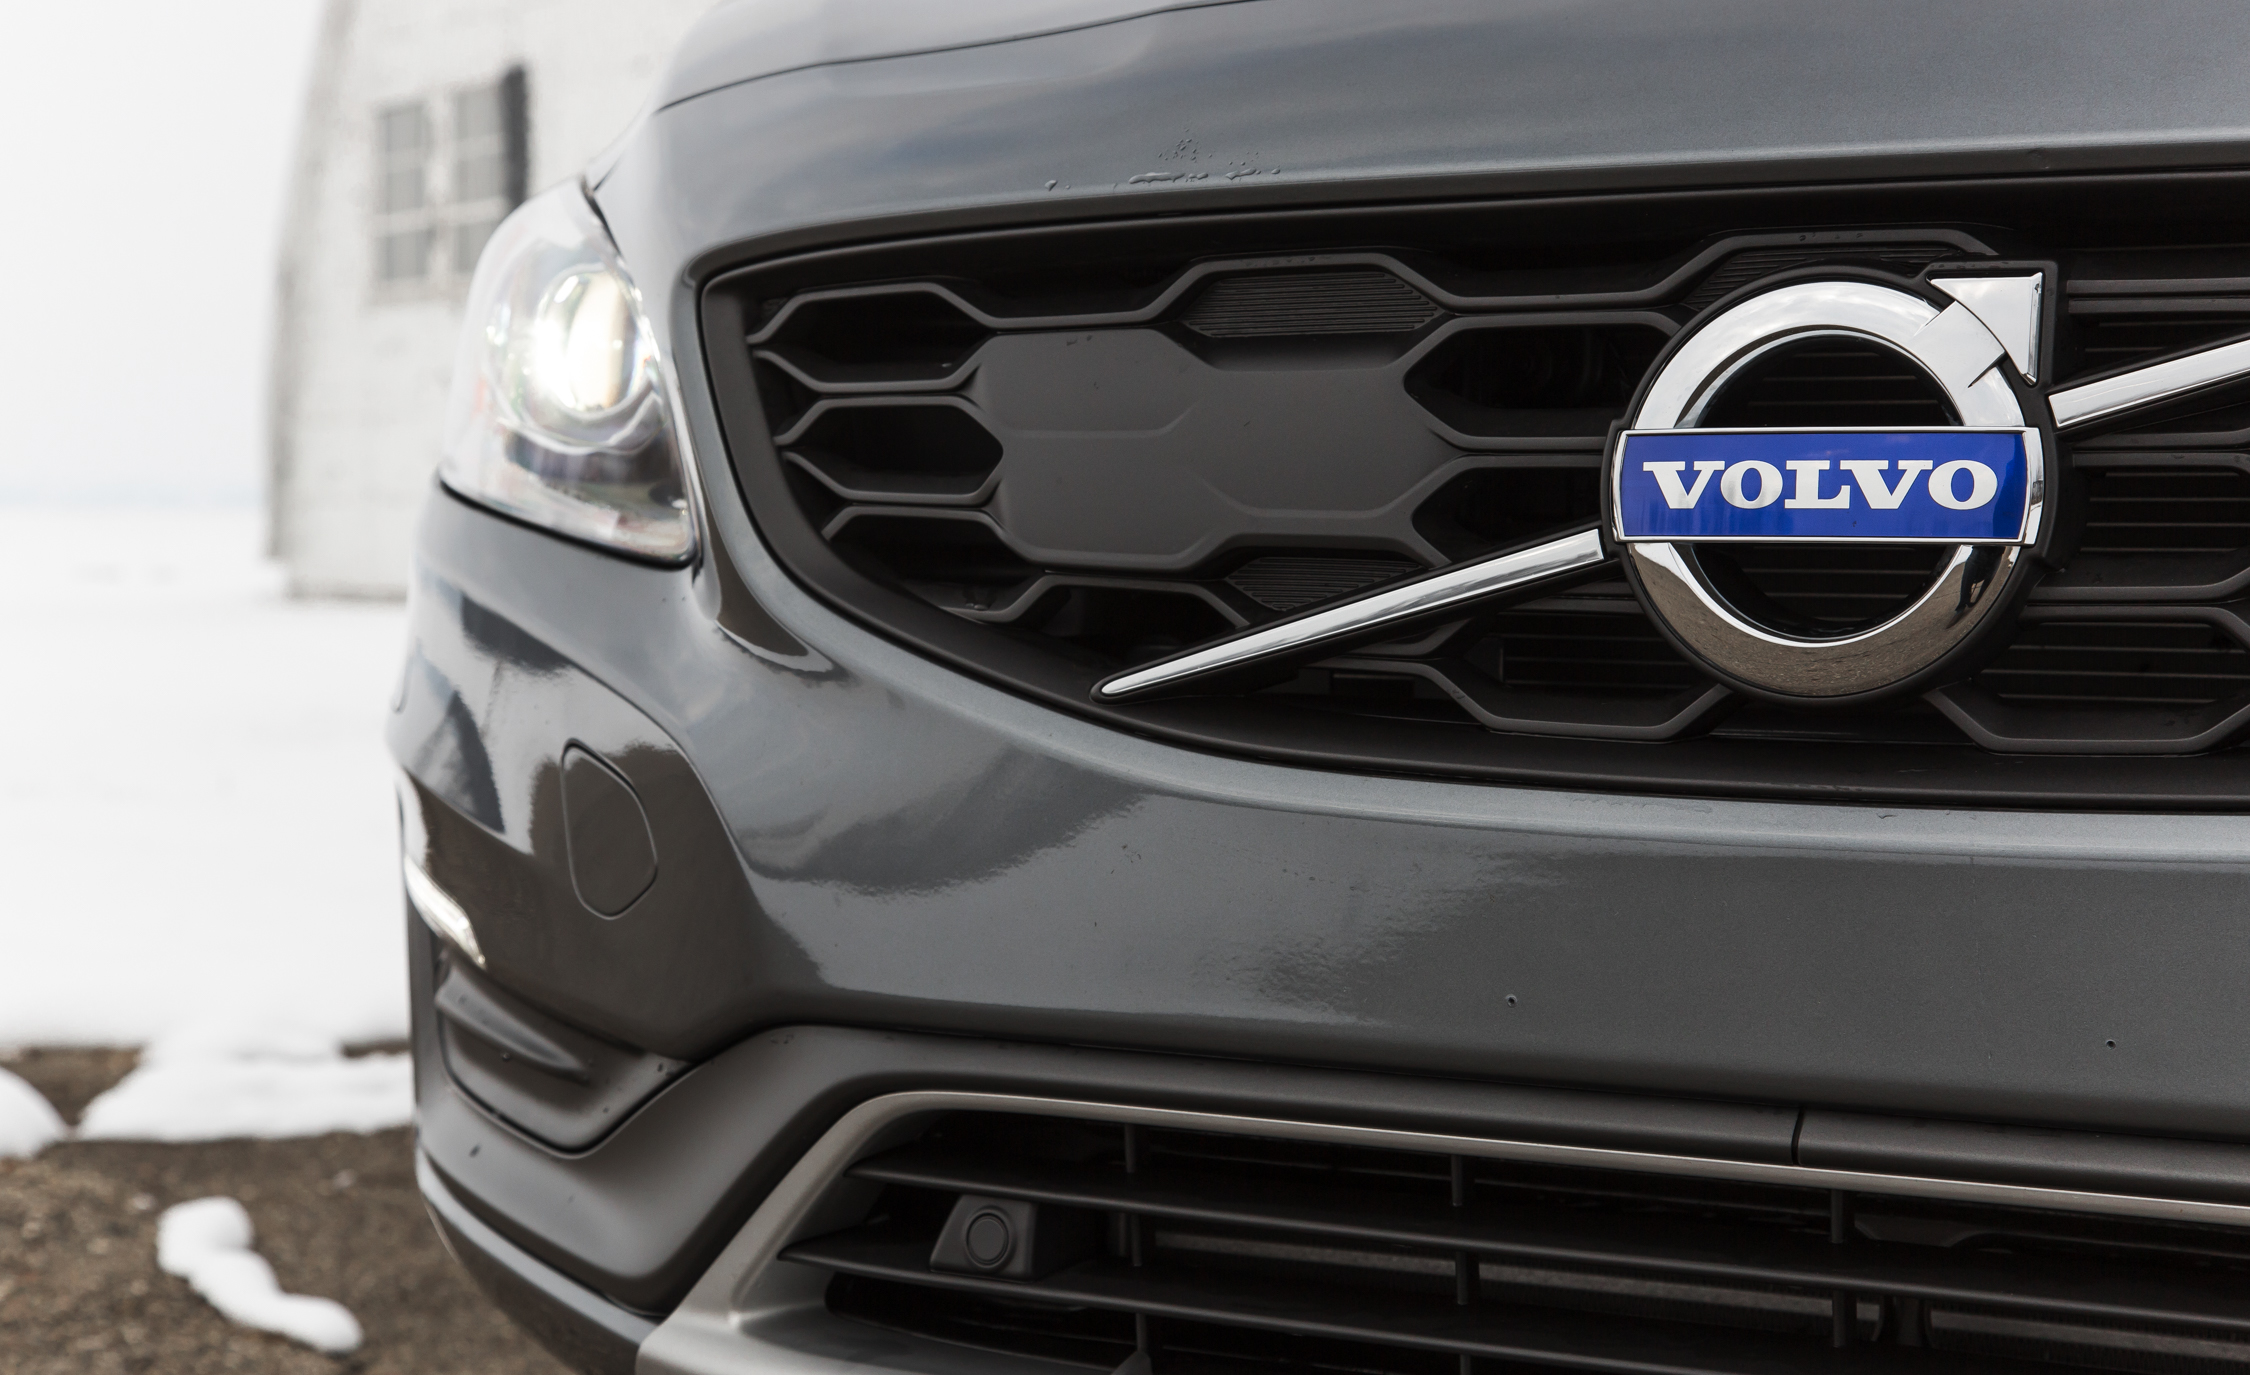 2016 Volvo S60 Cross Country Exterior Grille (Photo 7 of 21)